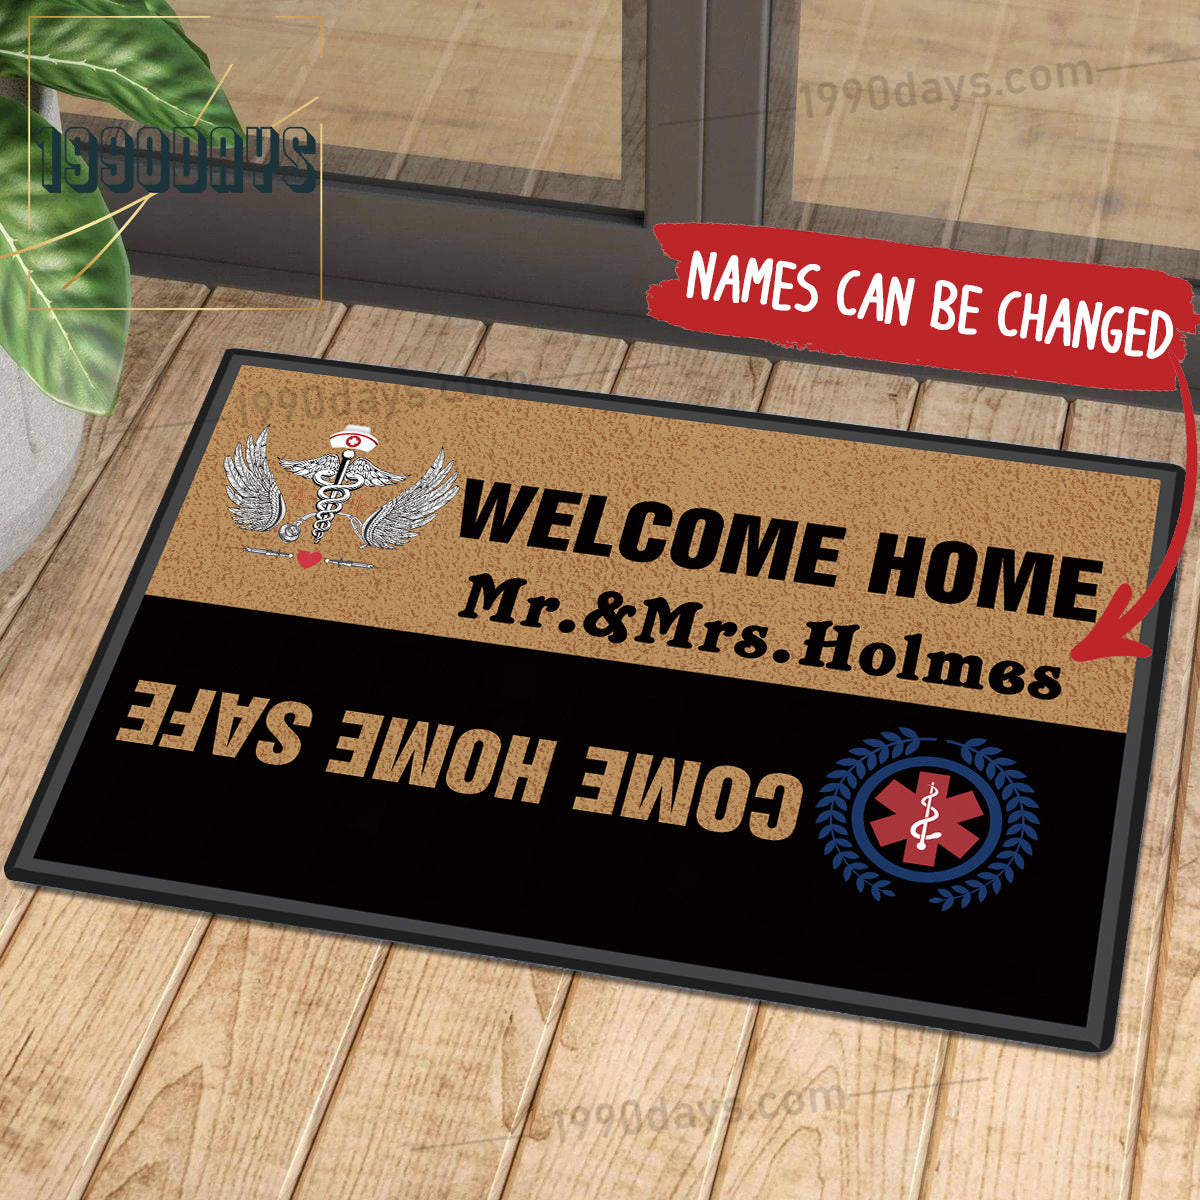 Welcome Home Come Home Safe Nurse Doormat Customize Your Name Black & White Indoor Outdoor Mat